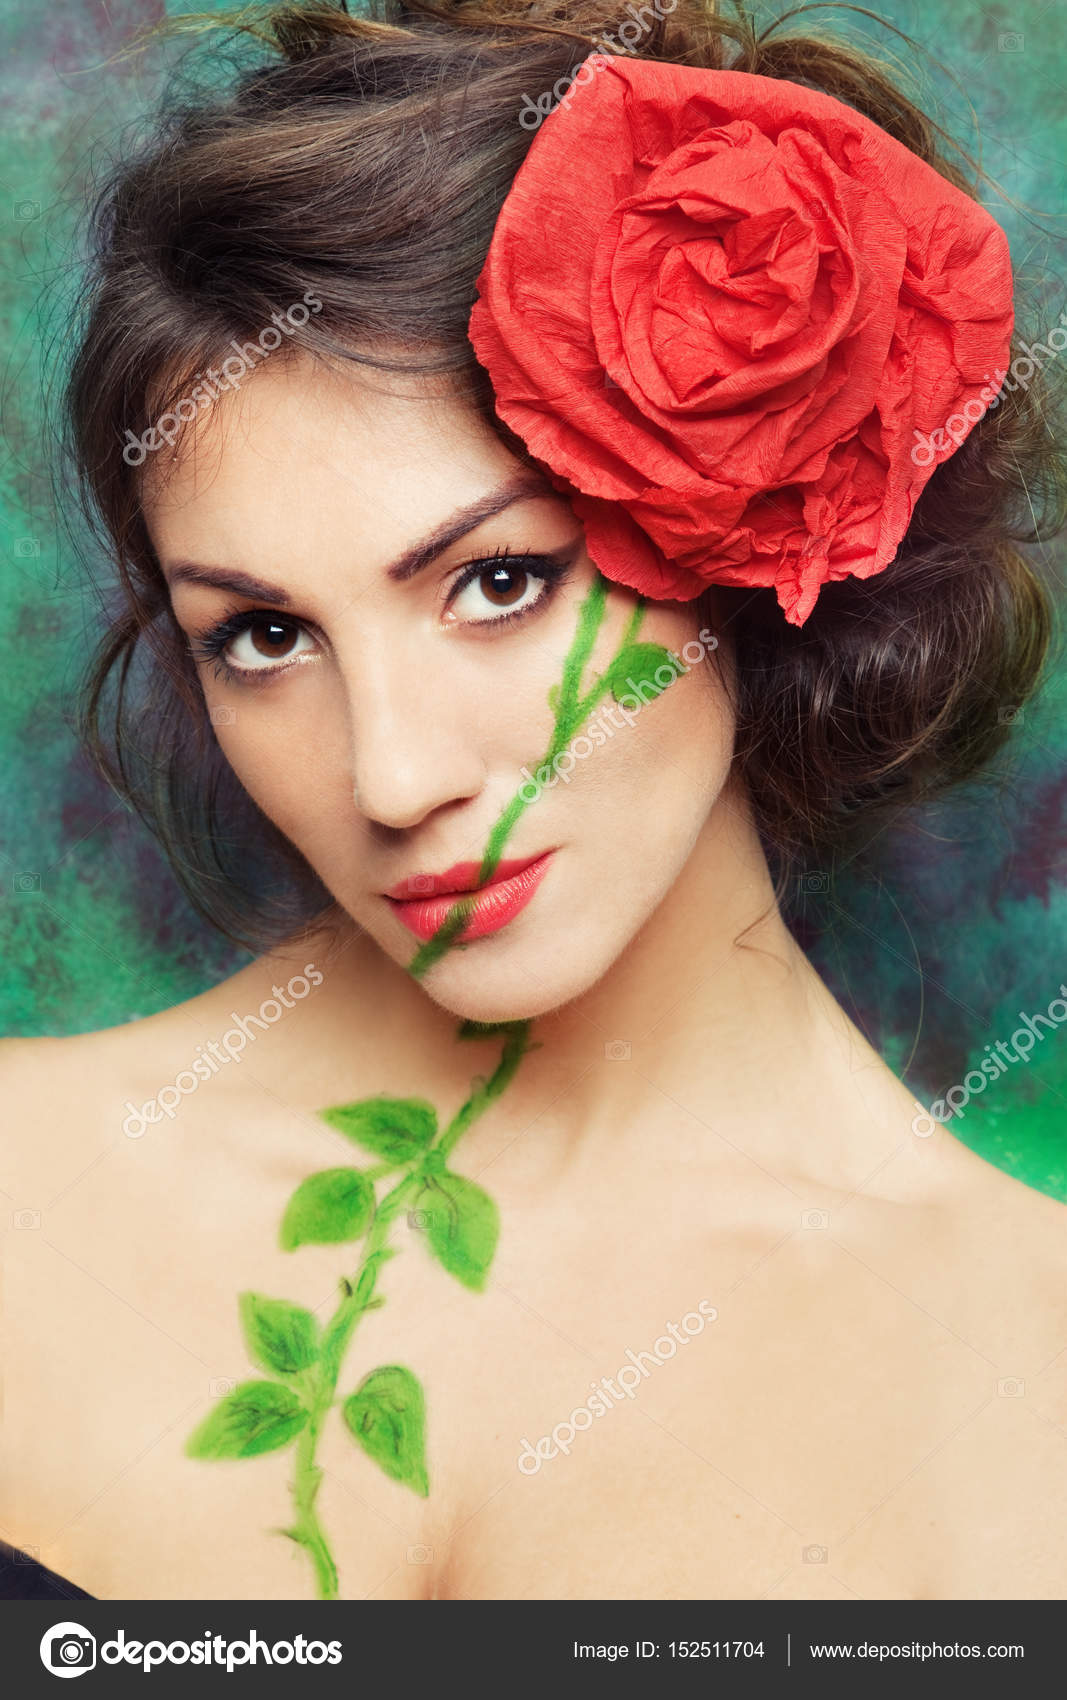 Woman With Red Rose In Hair Stock Photo Radarani 152511704